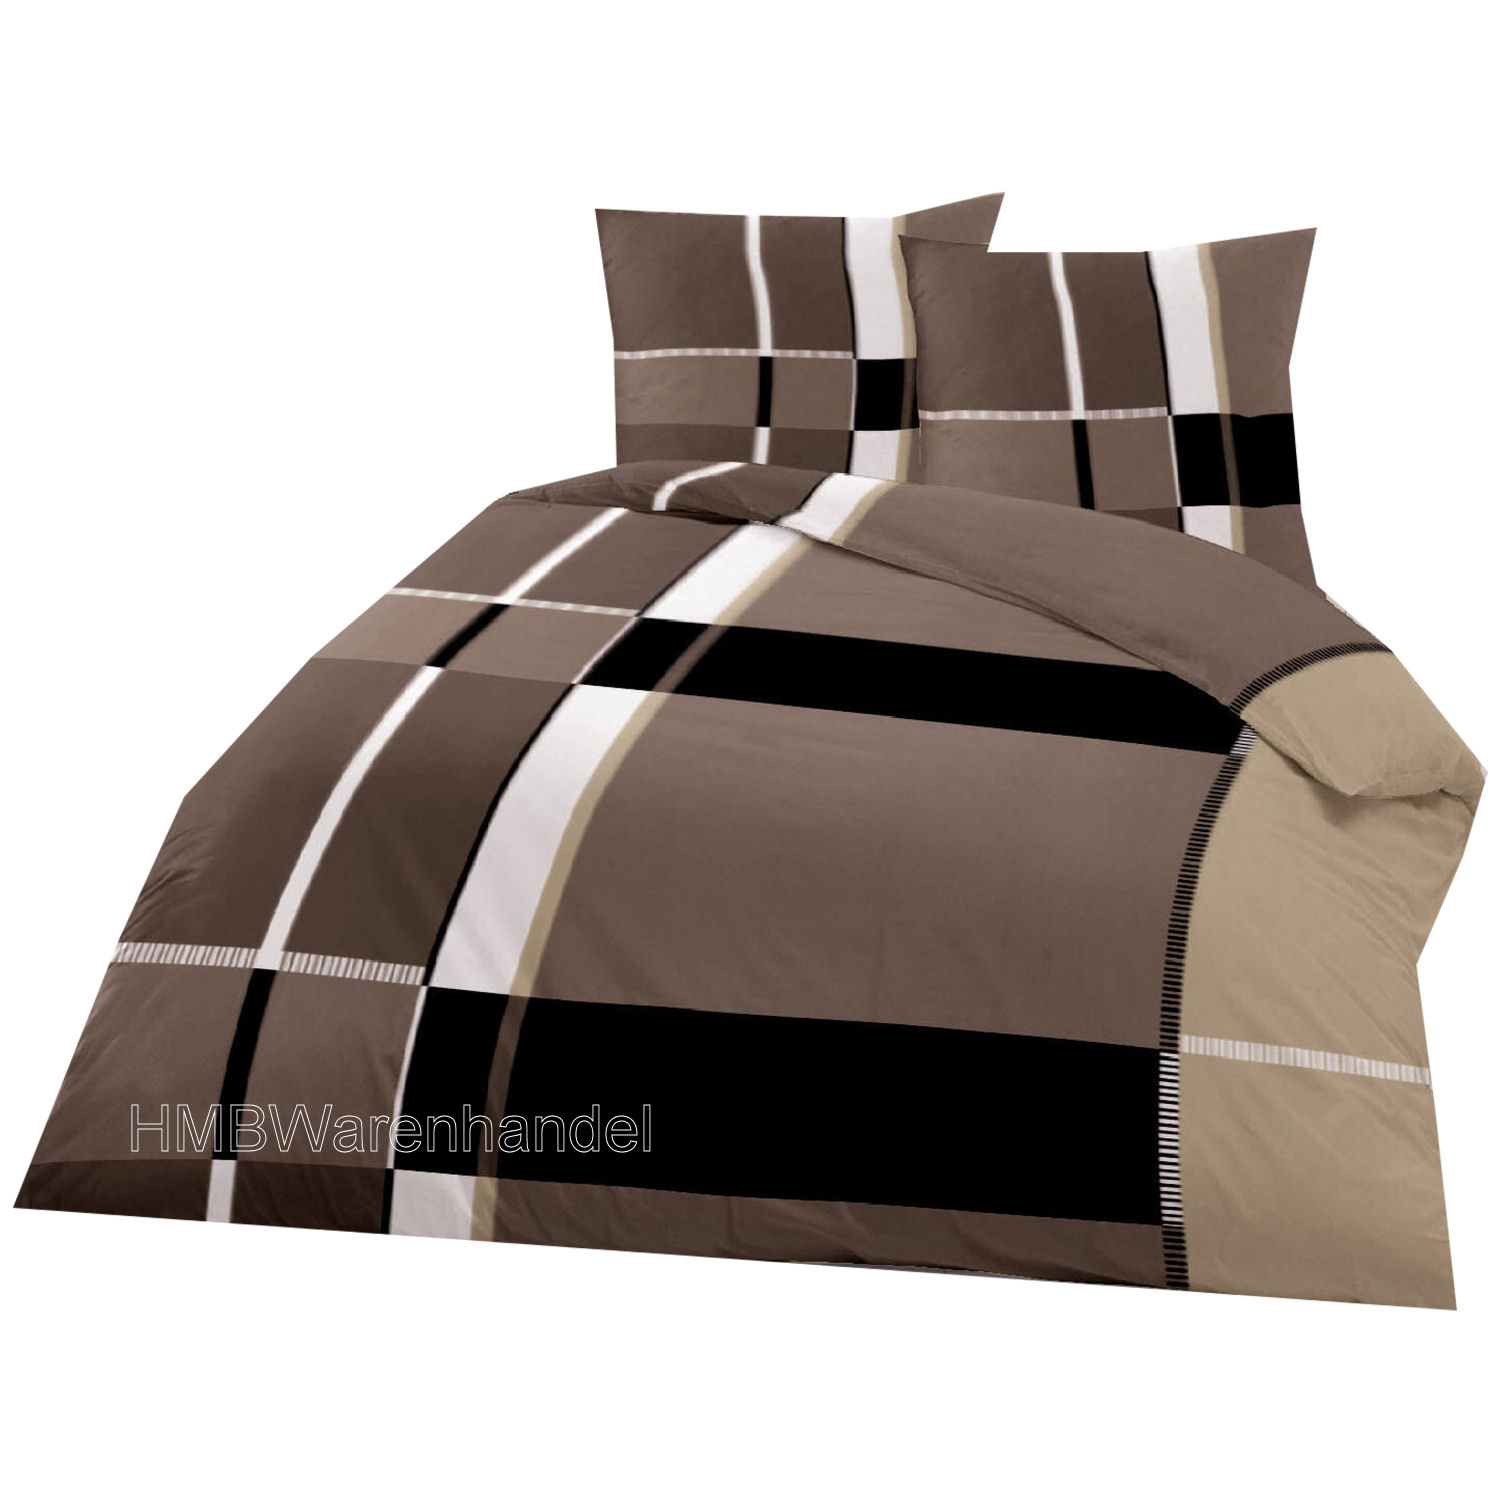 microfaser bettw sche set doppelbett 3 tlg 200x200 mehrere muster ebay. Black Bedroom Furniture Sets. Home Design Ideas